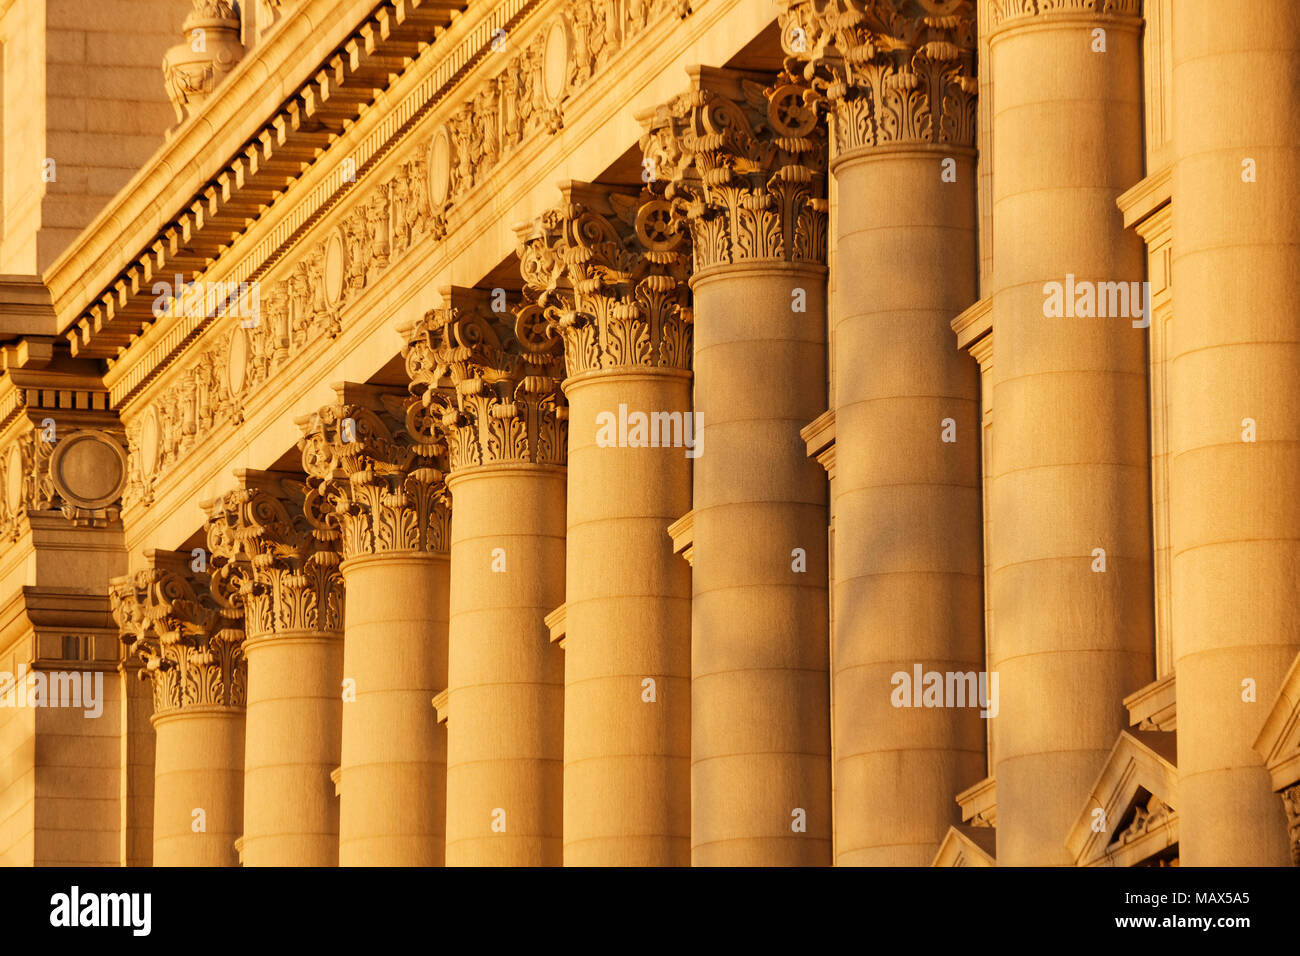 A series of Corinthian Columns shot at sunset, this was taken in lower Manhattan at the old customs house Stock Photo